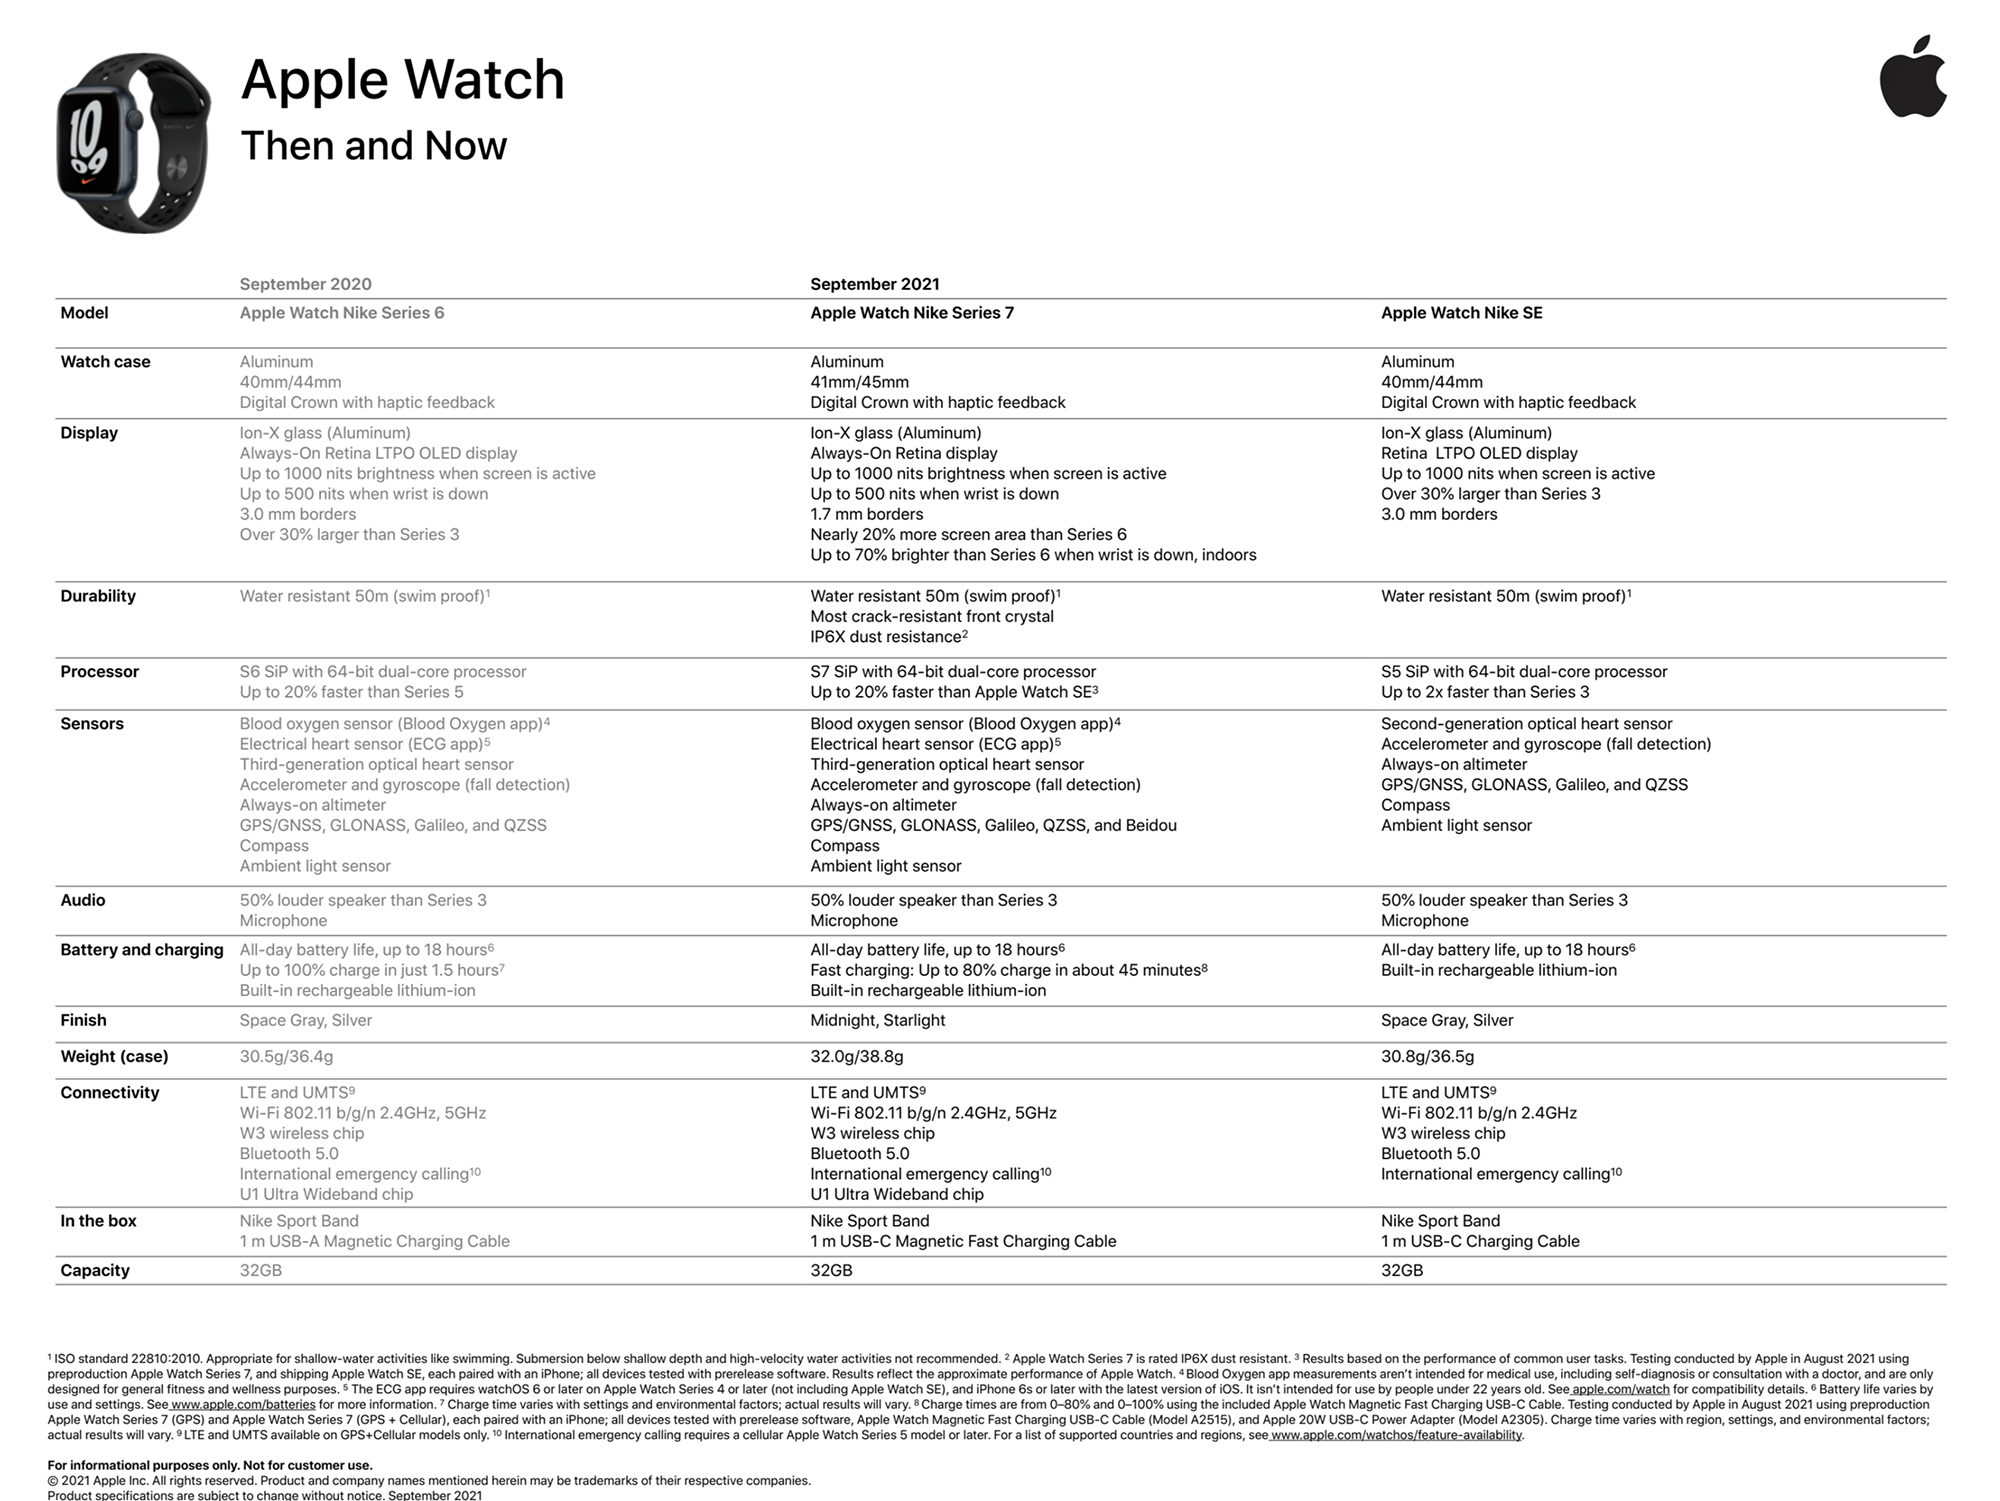 Apple Watch Series 7 specifications